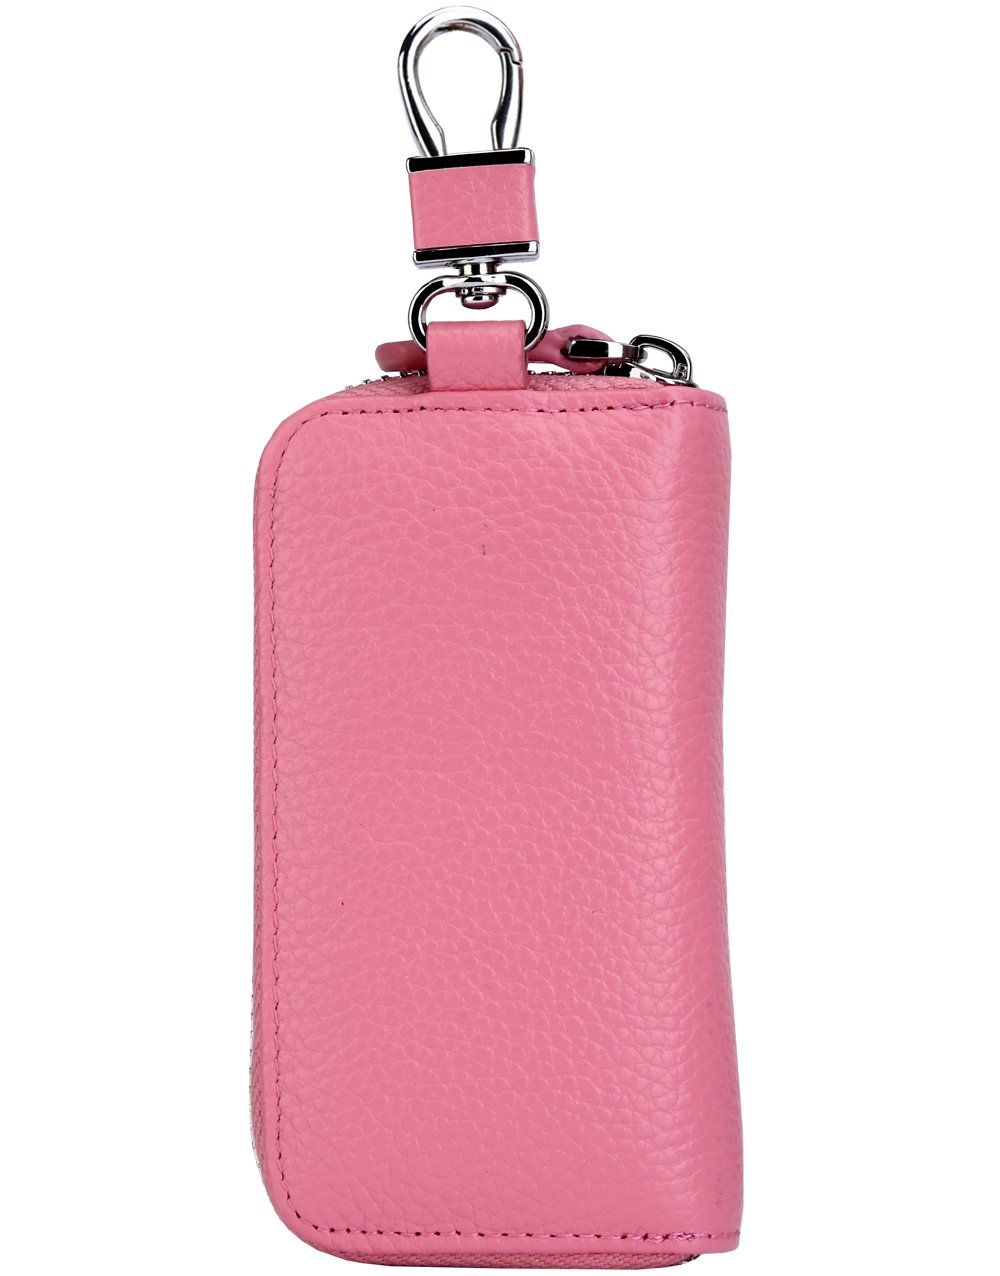 Women's Genuine Leather Zipper Key Case Car Key Holder 6 Hook Key Wallet (Pink)